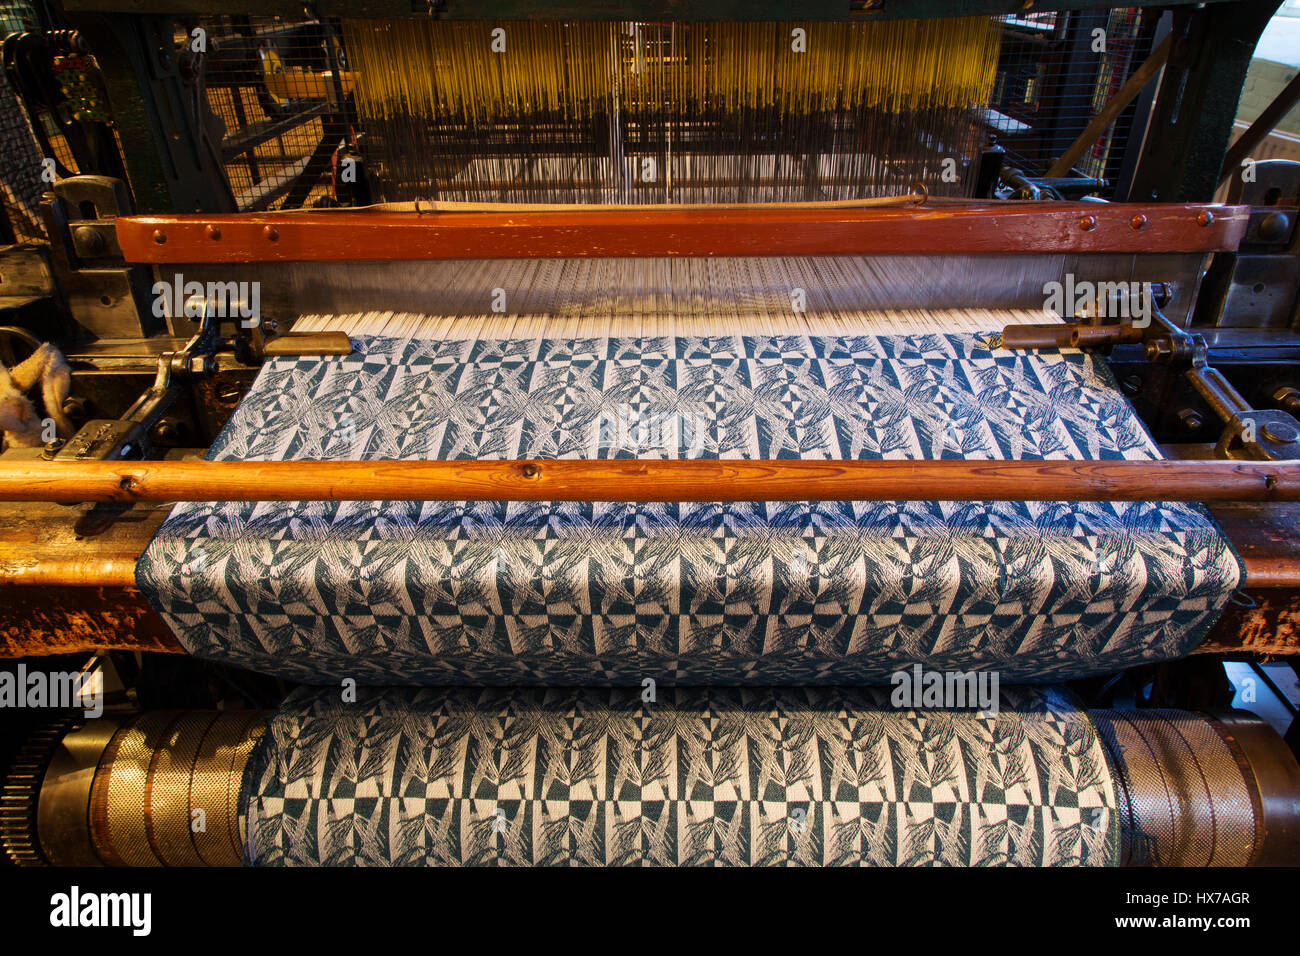 Textile Mill Loom Stock Photos & Textile Mill Loom Stock